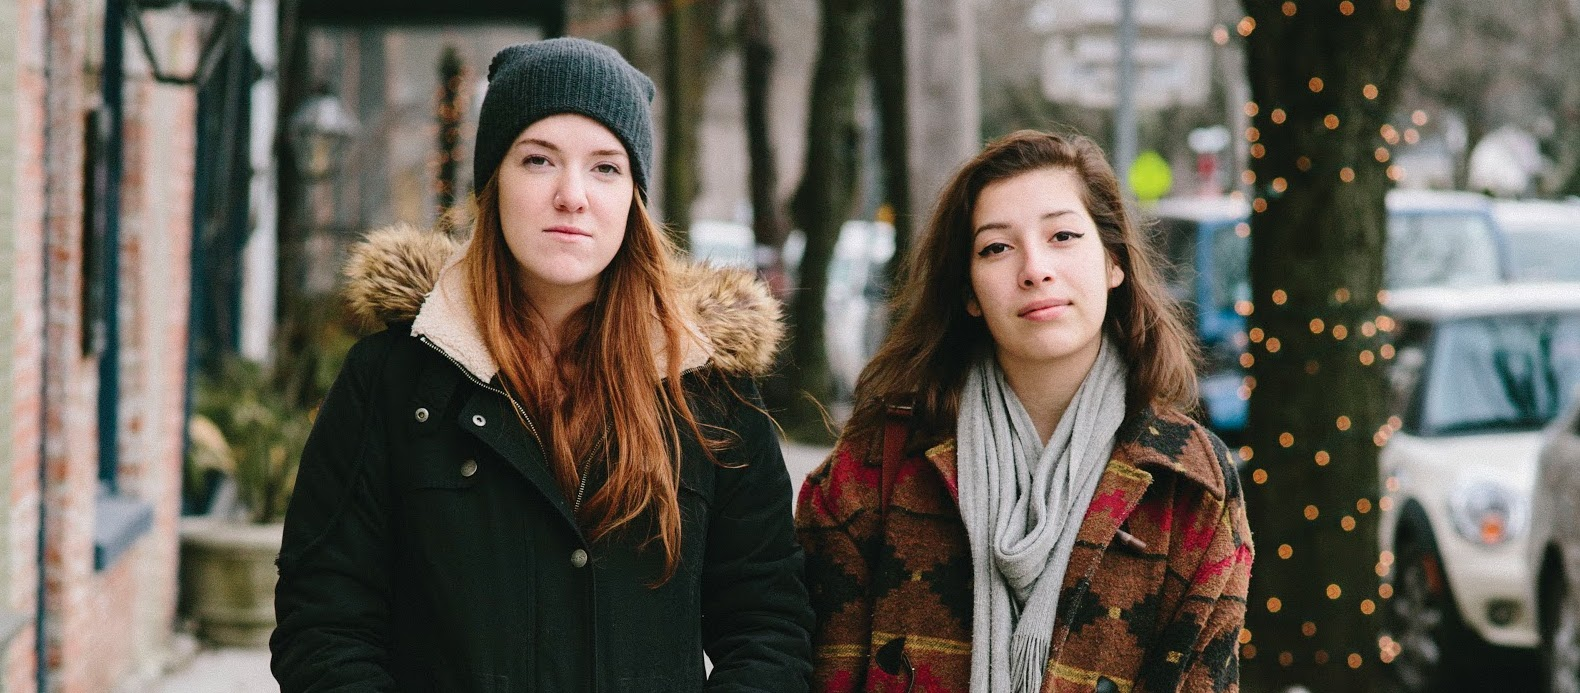 Bard students Evelina Brown (L) and Sarah McCausland pose for a magazine photographer in Rhinebeck two weeks before their deaths. Thomas Smith, for Chronogram